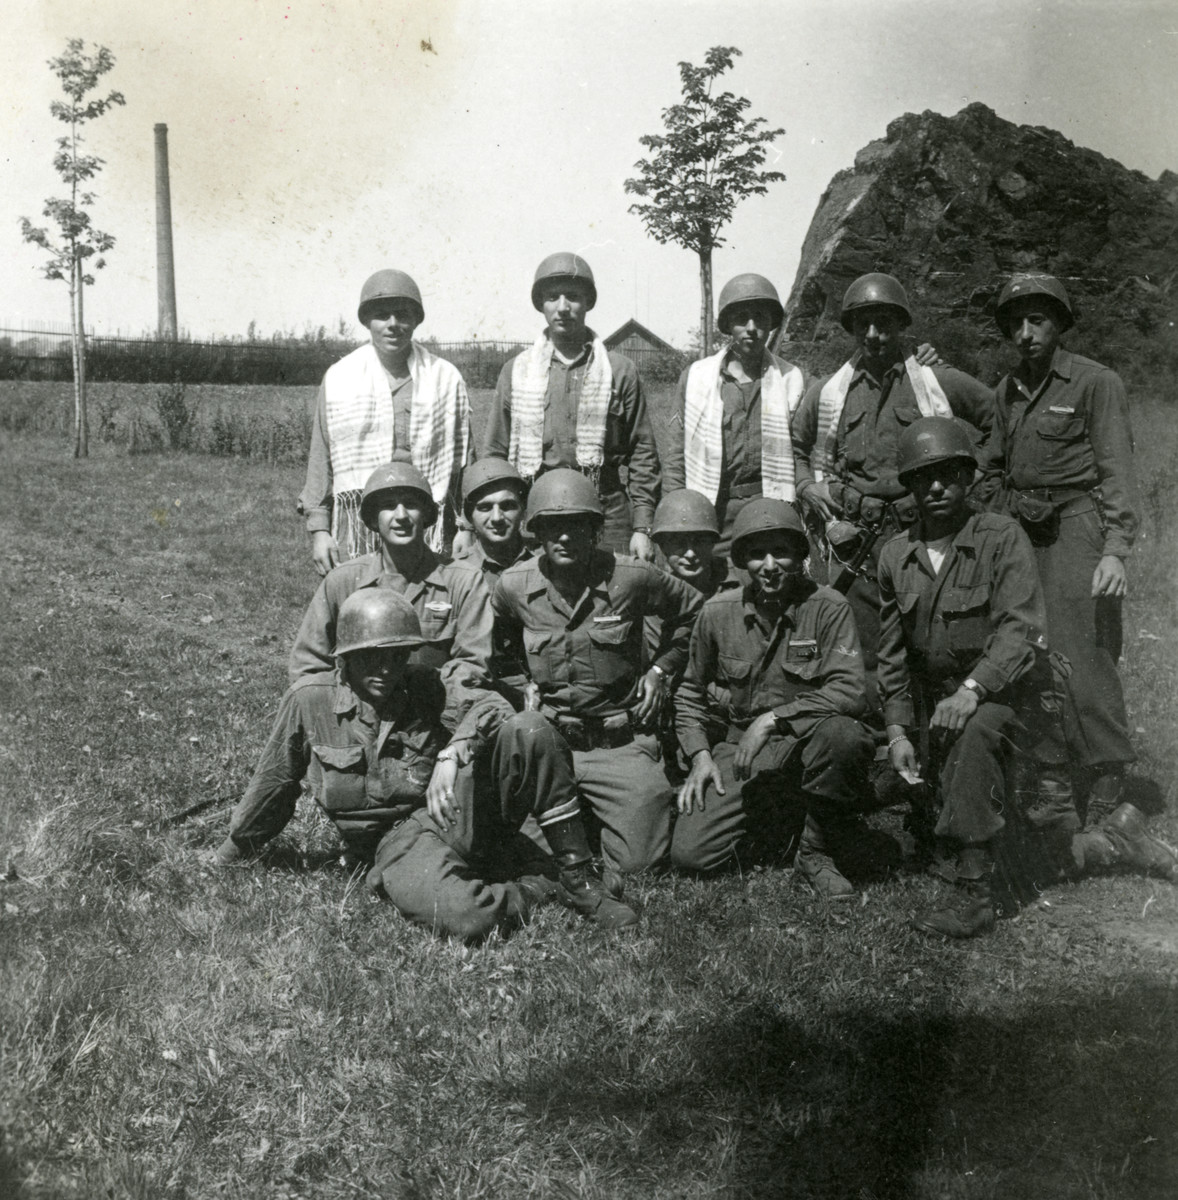 Group portrait of American Jewish soldiers.  Among those pictured is Chaplain Geller (back row) who assisted the donor after liberation.